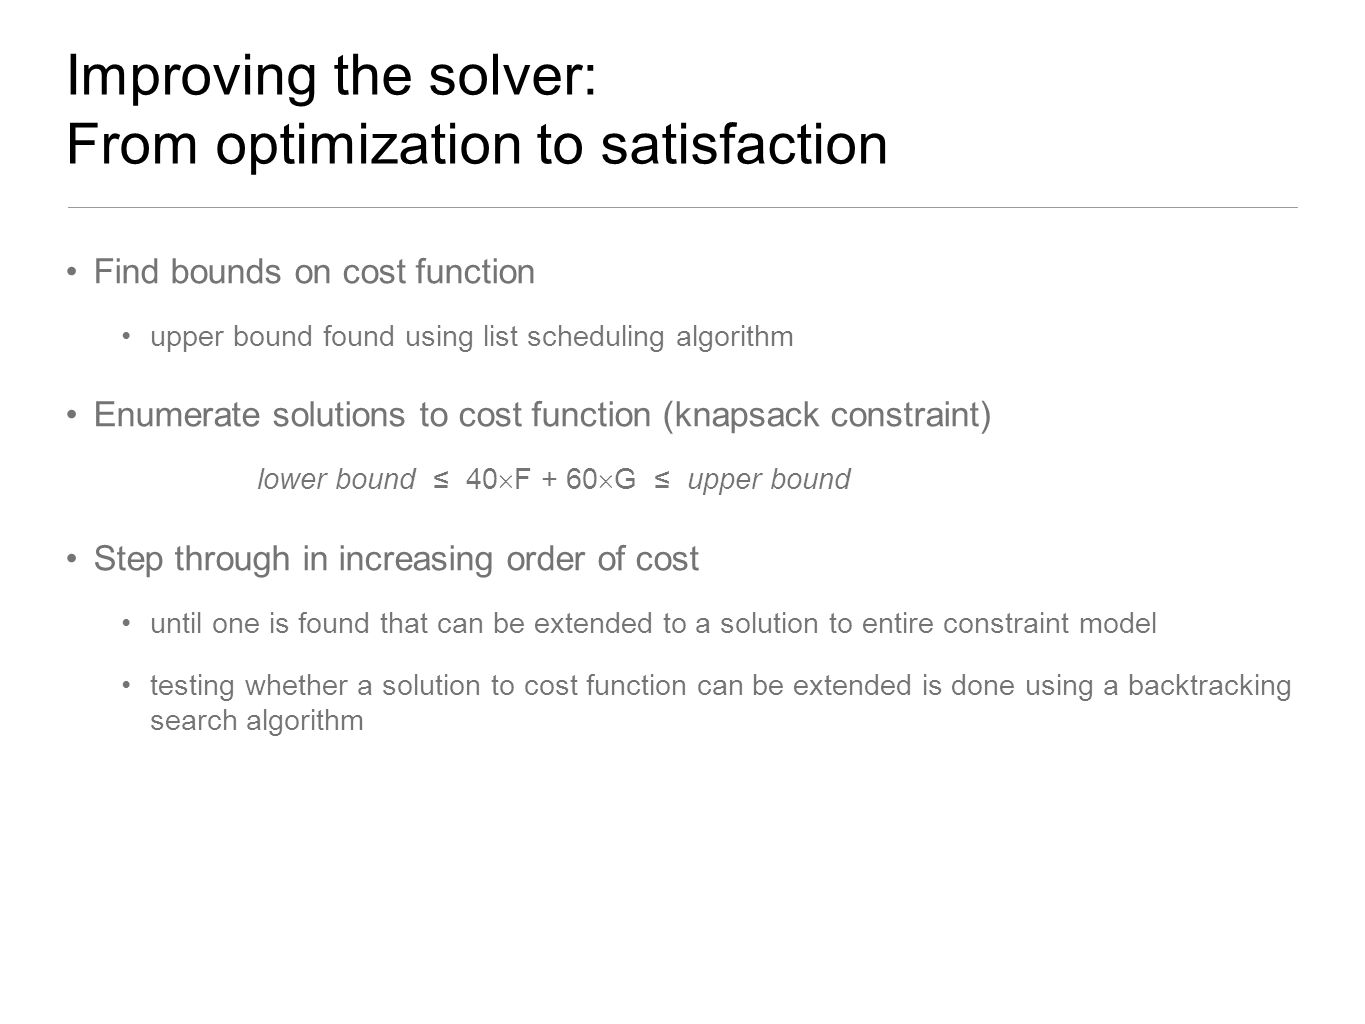 Improving the solver: From optimization to satisfaction